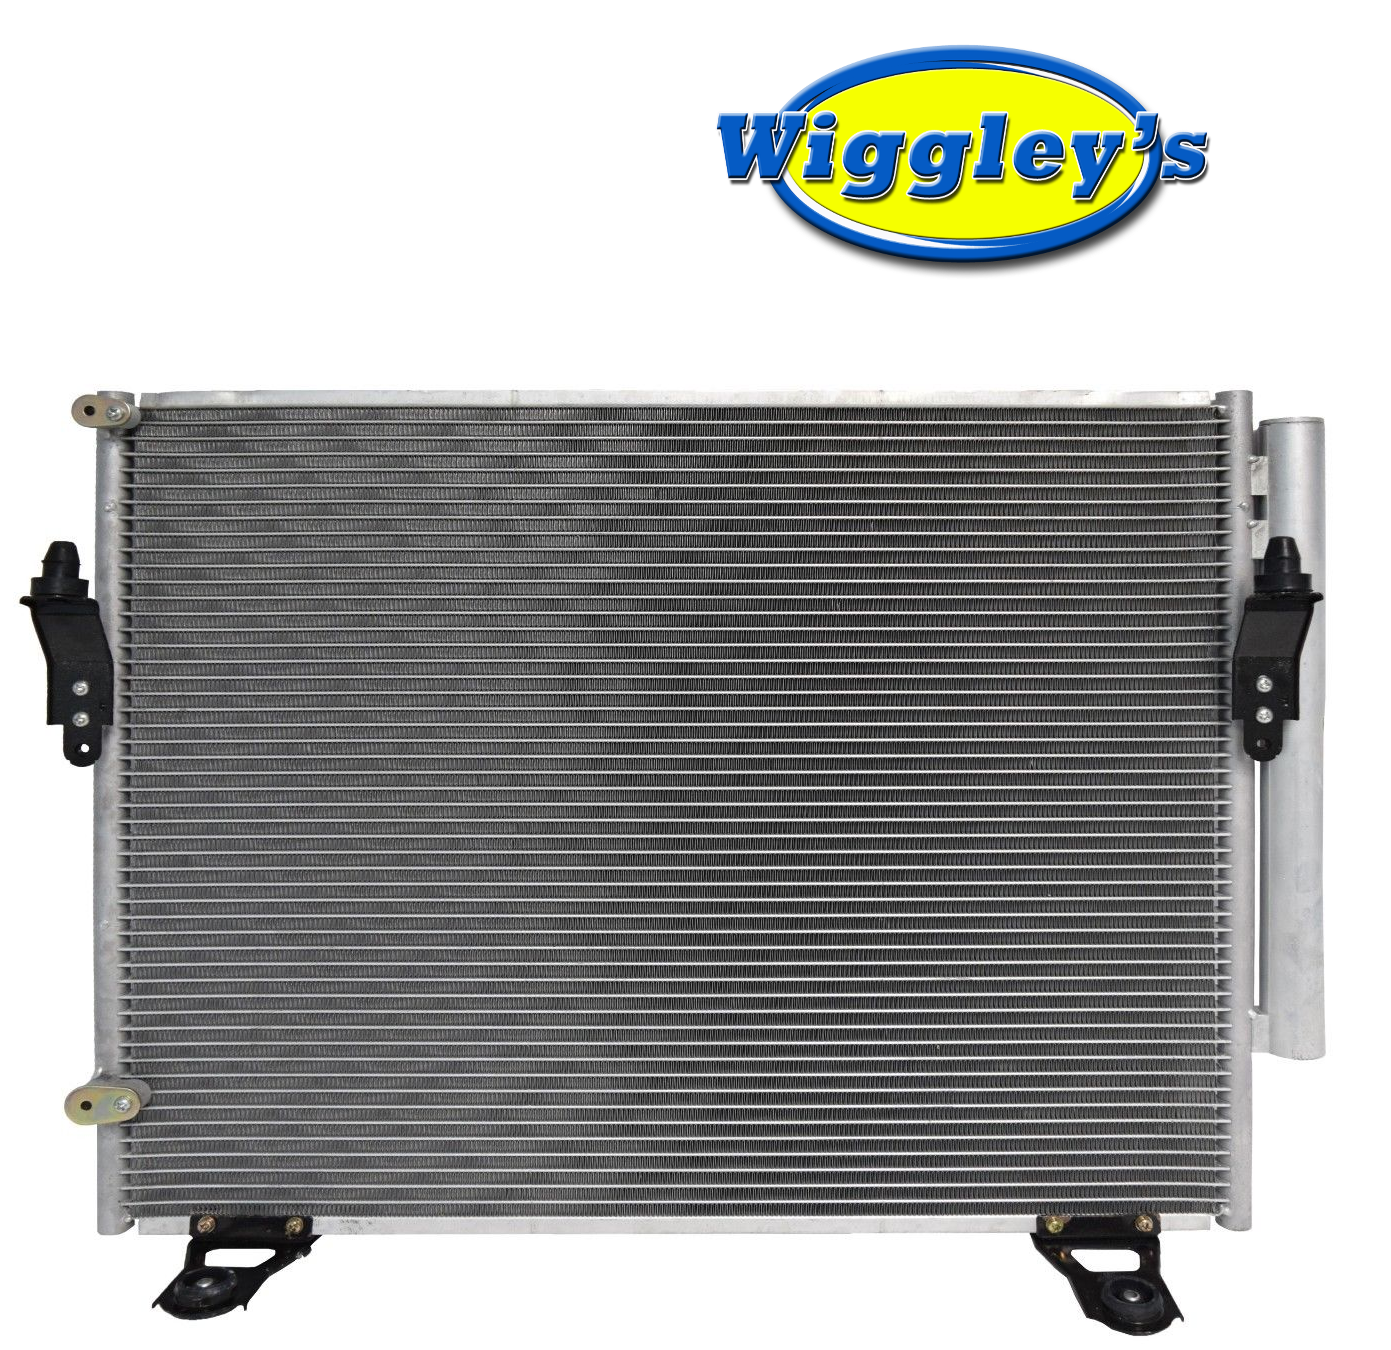 A/C CONDENSER TO3030210 FOR 06 -18 TOYOTA TUNDRA SEQUOIA 4.6L 5.7L 4.0L 4.7L V8